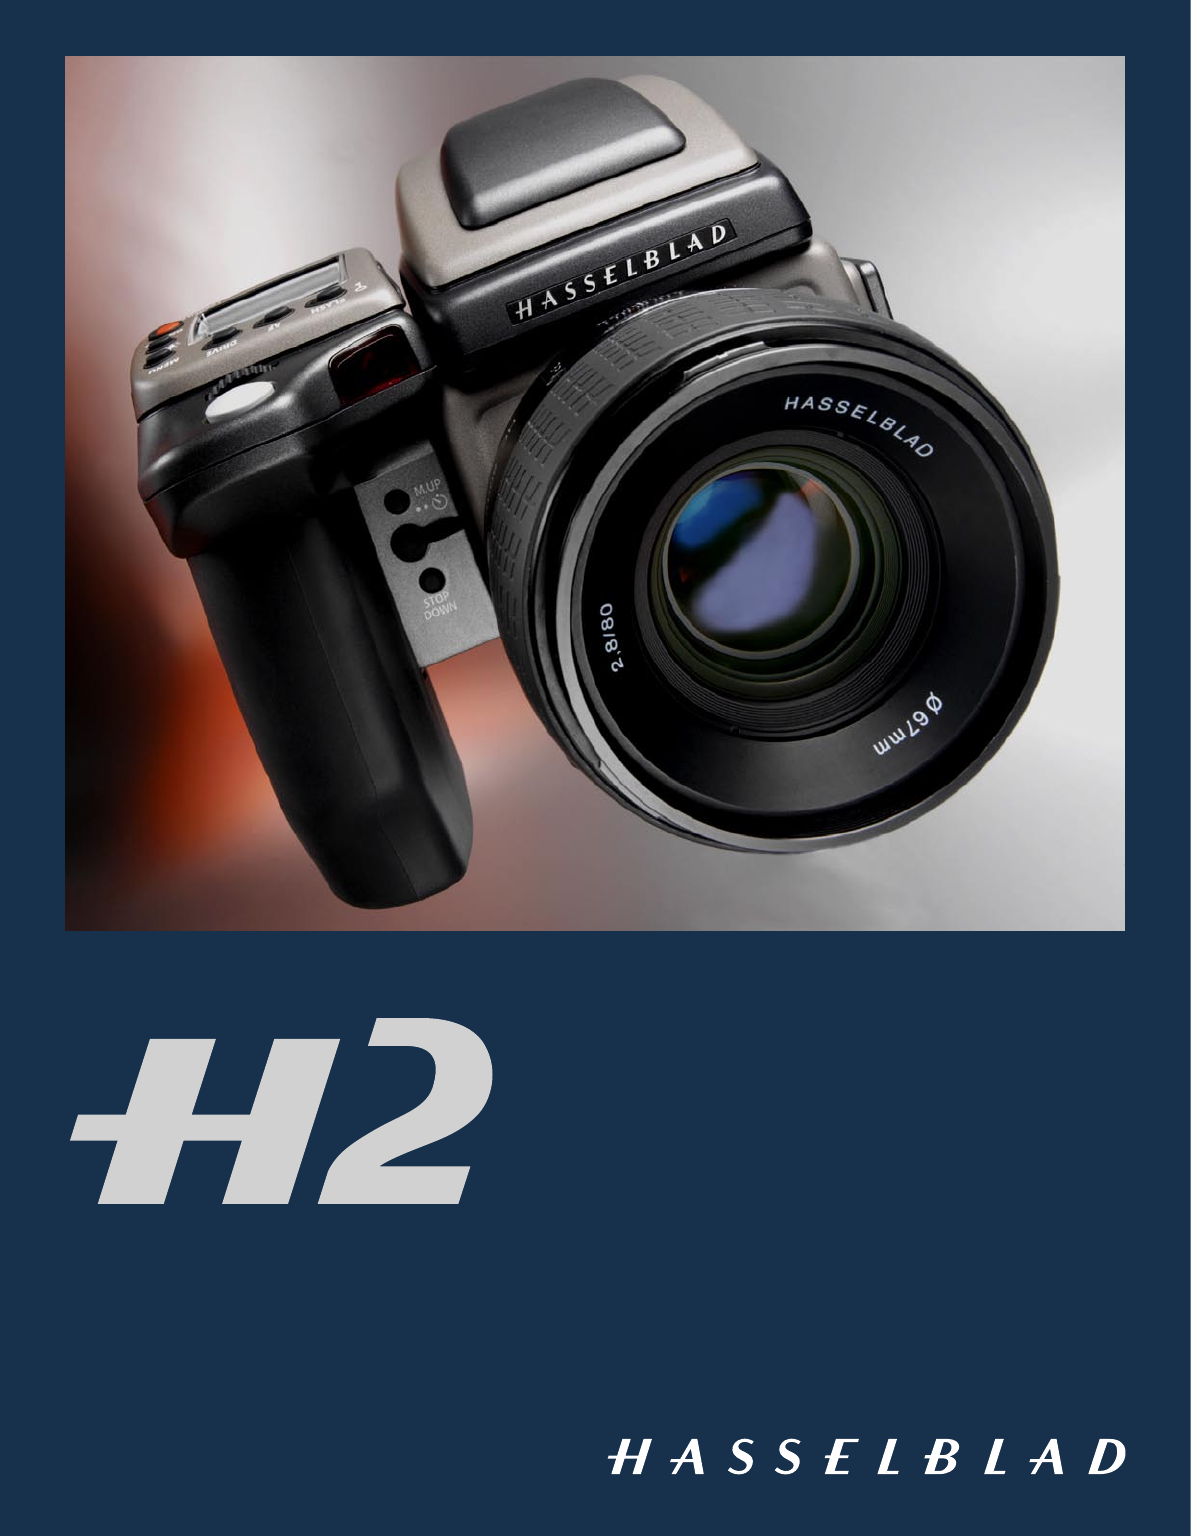 sq8 camera user manual pdf